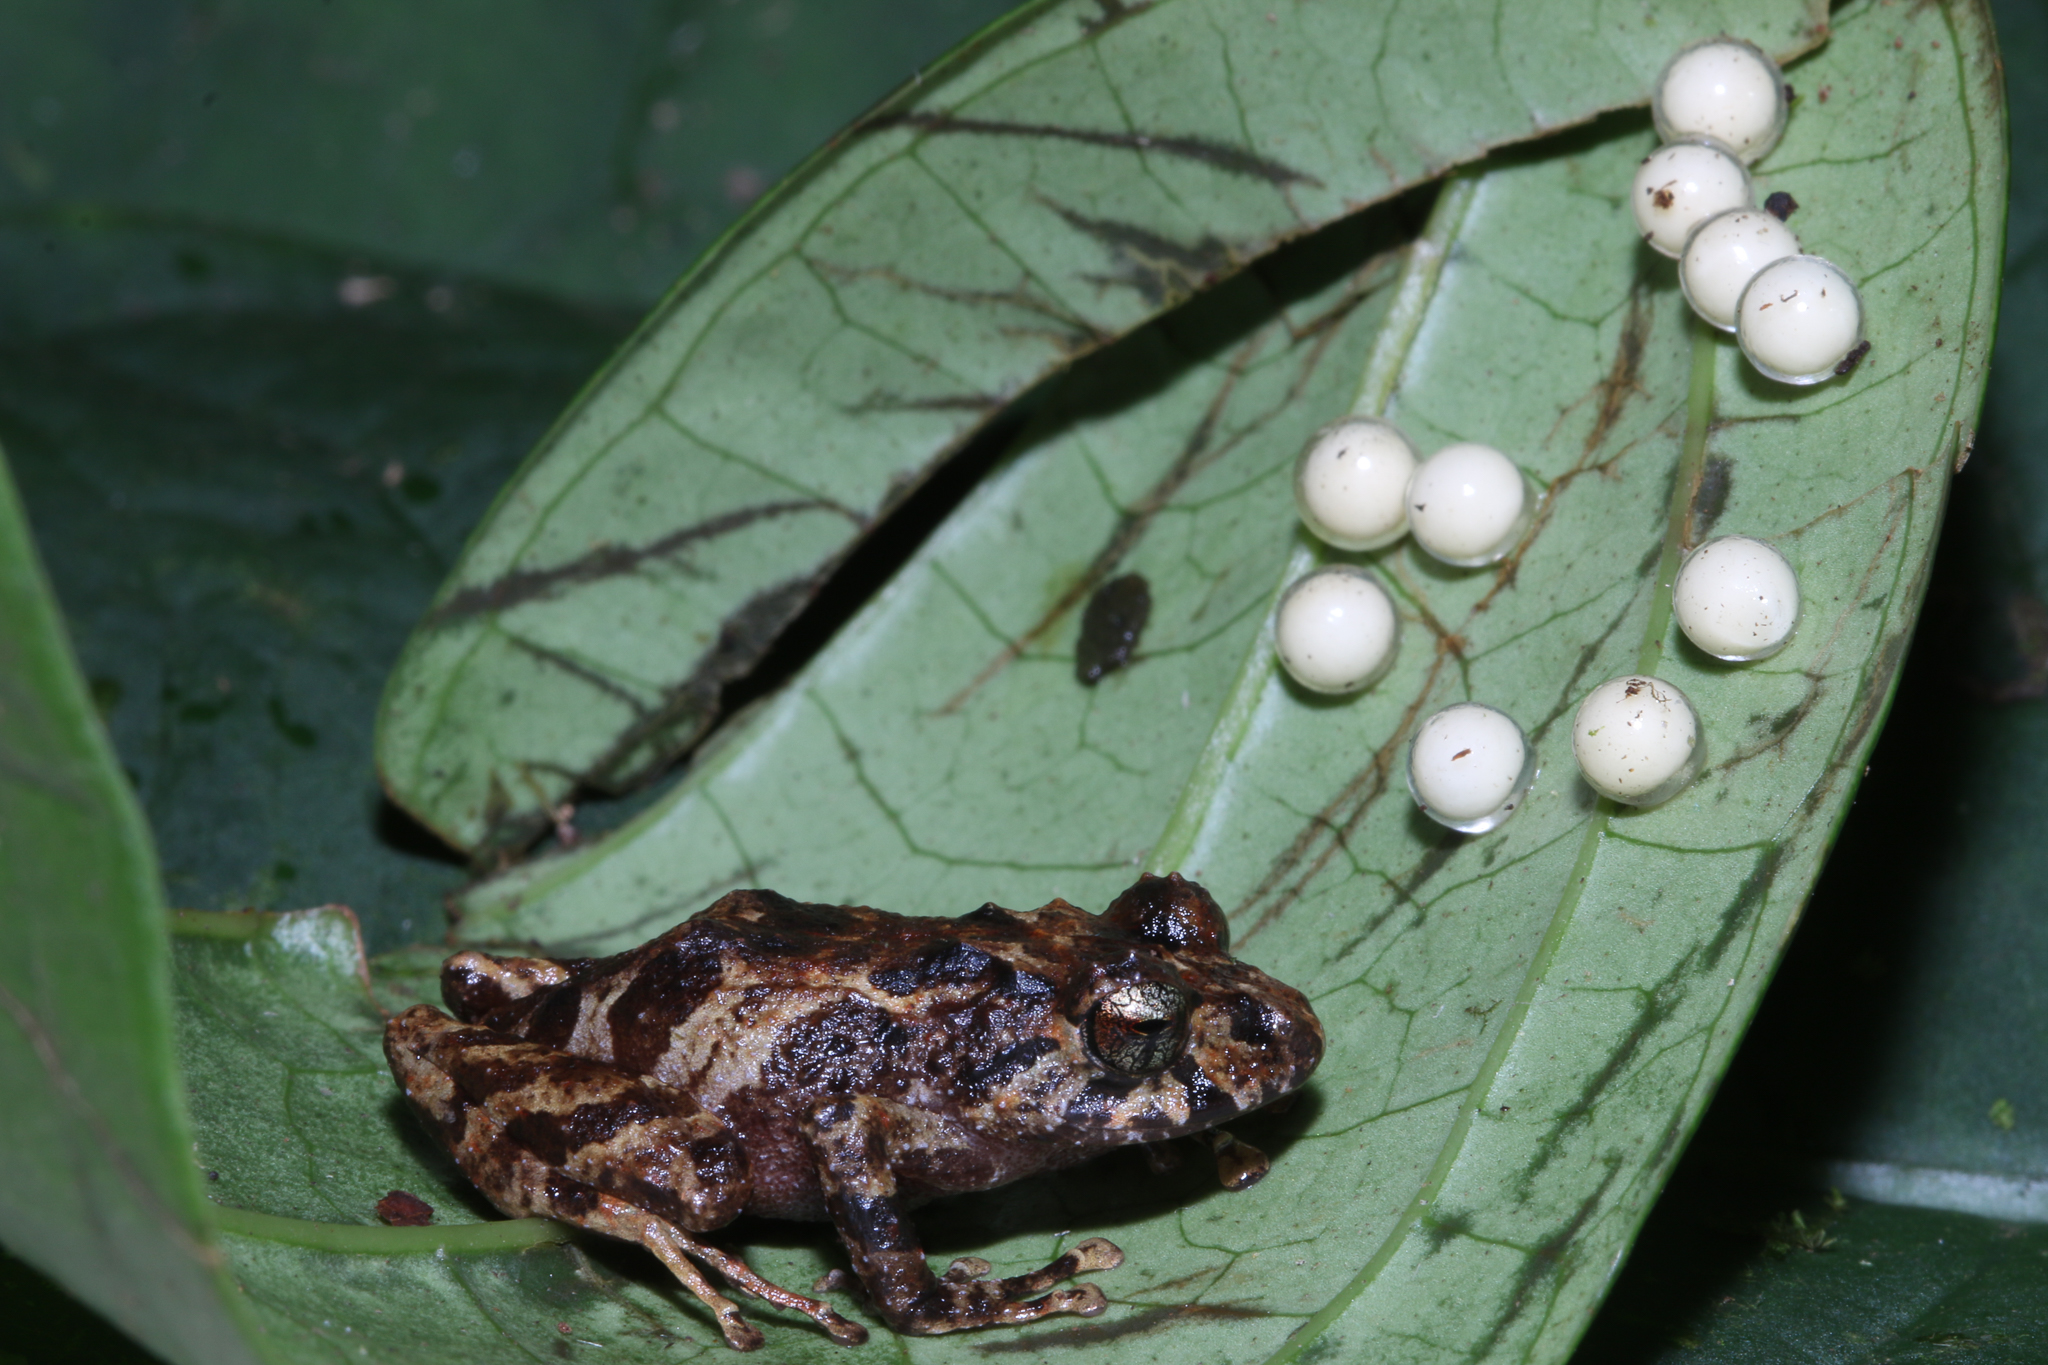 A new species of frog in the genus Pristimantis discovered near Camp 2. Photo by Giussepe Gagliardi